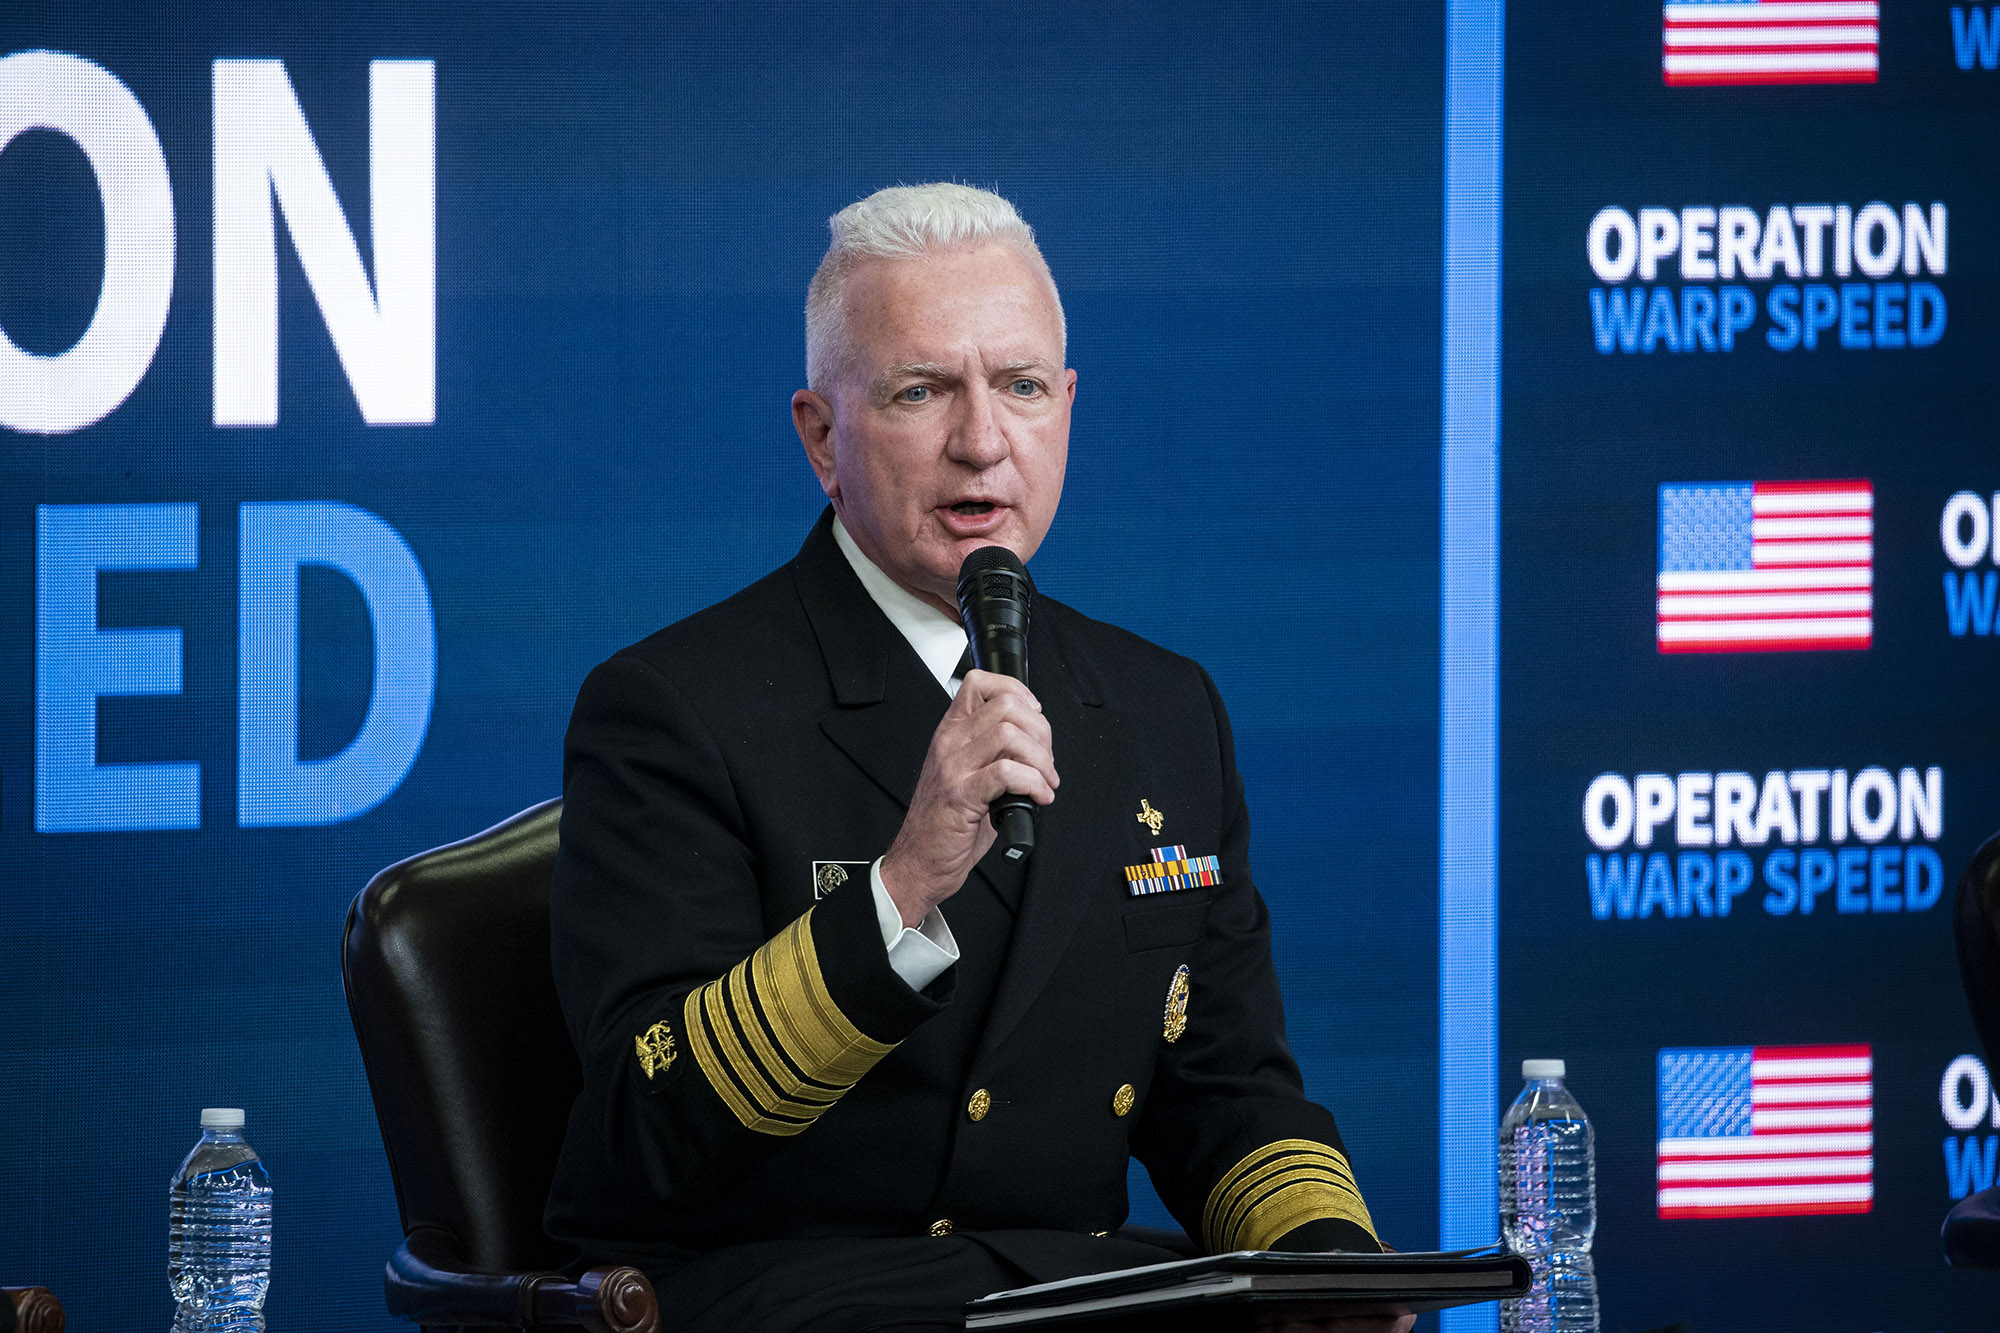 Admiral Brett Giroir, U.S. assistant secretary for health, speaks during an Operation Warp Speed vaccine summit at the White House in Washington DC, on Tuesday, December 8.